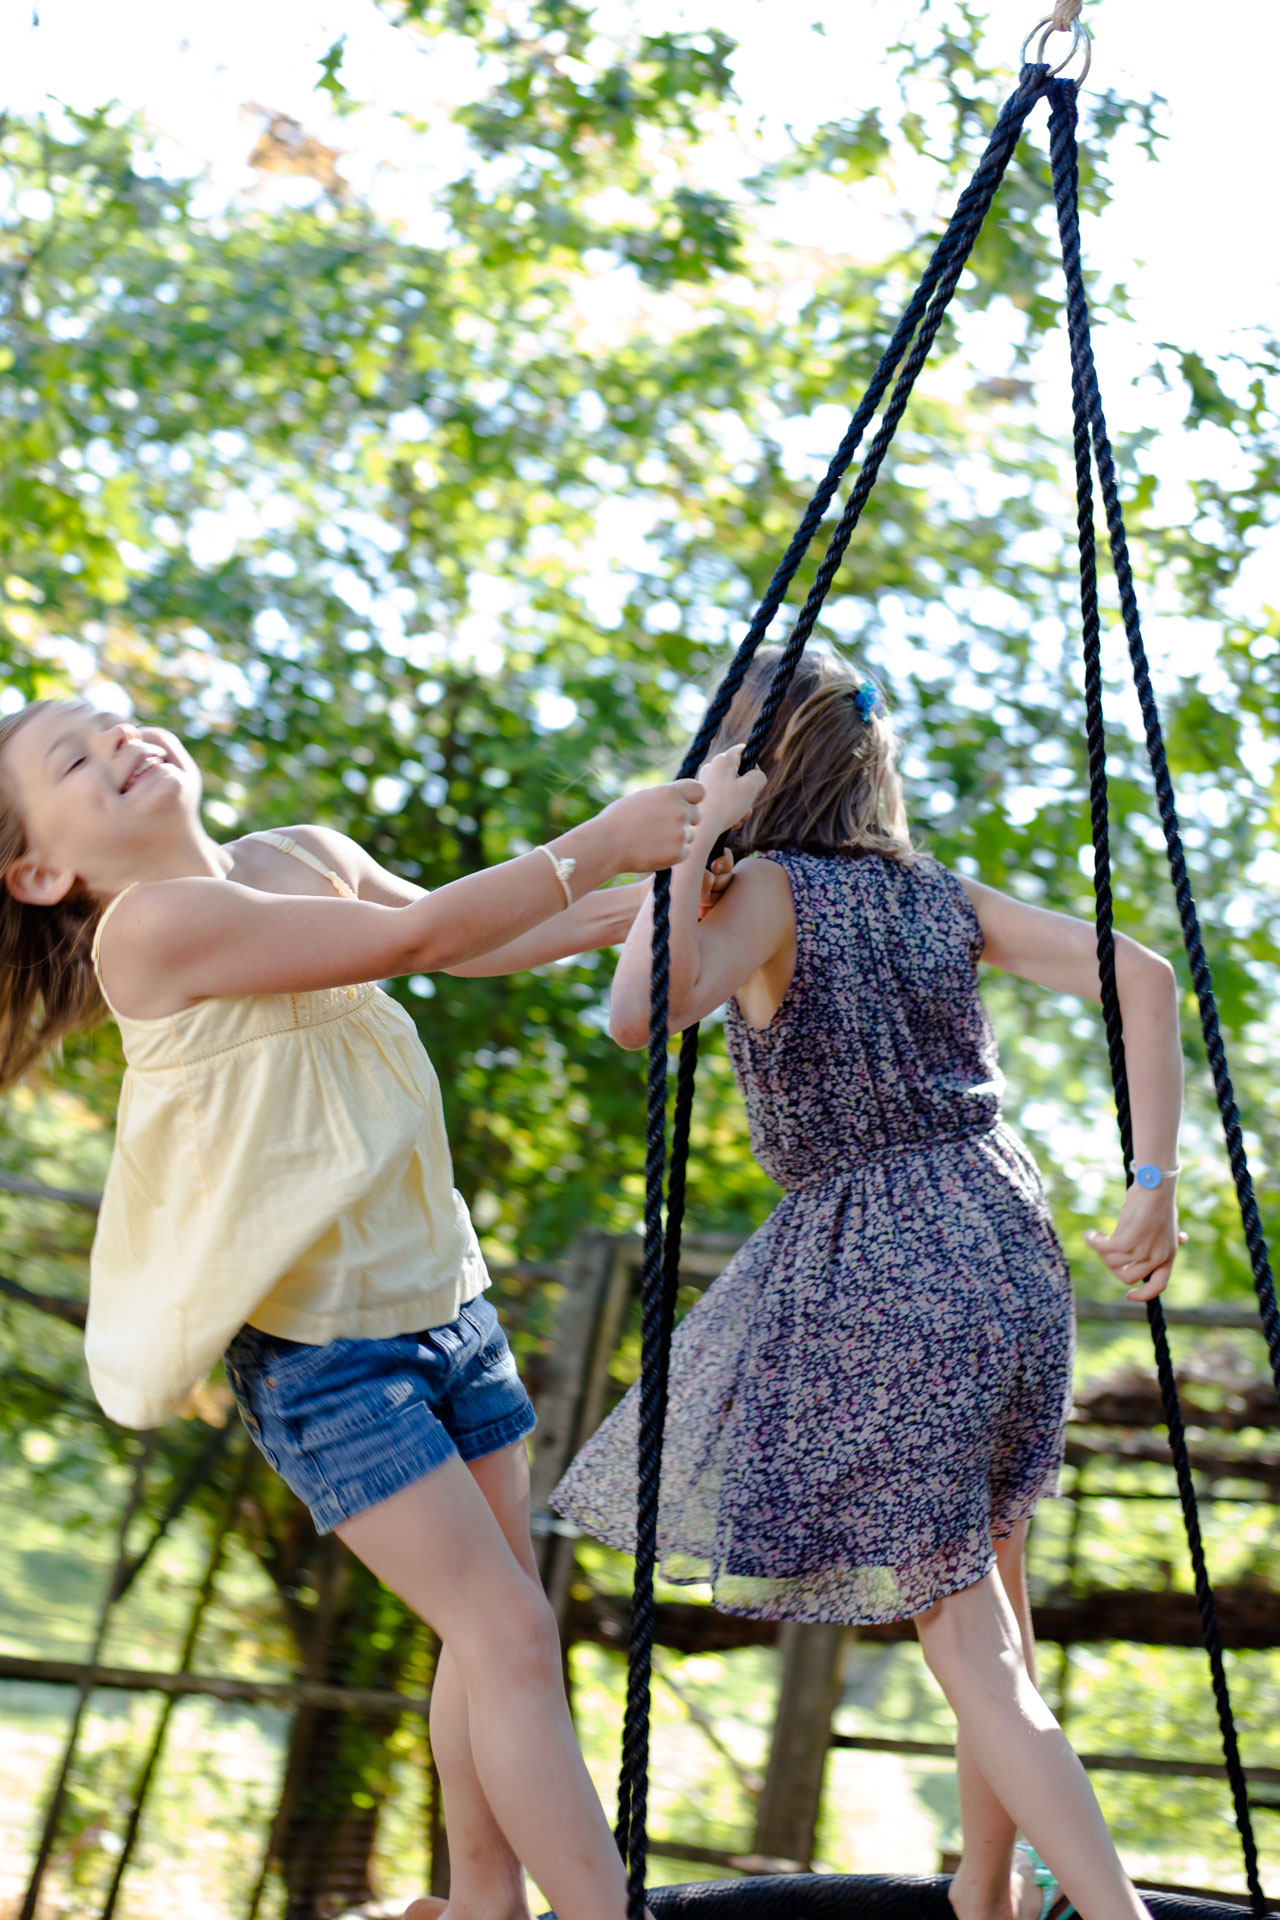 two sisters swinging together on net swing with green trees behind them and smiling